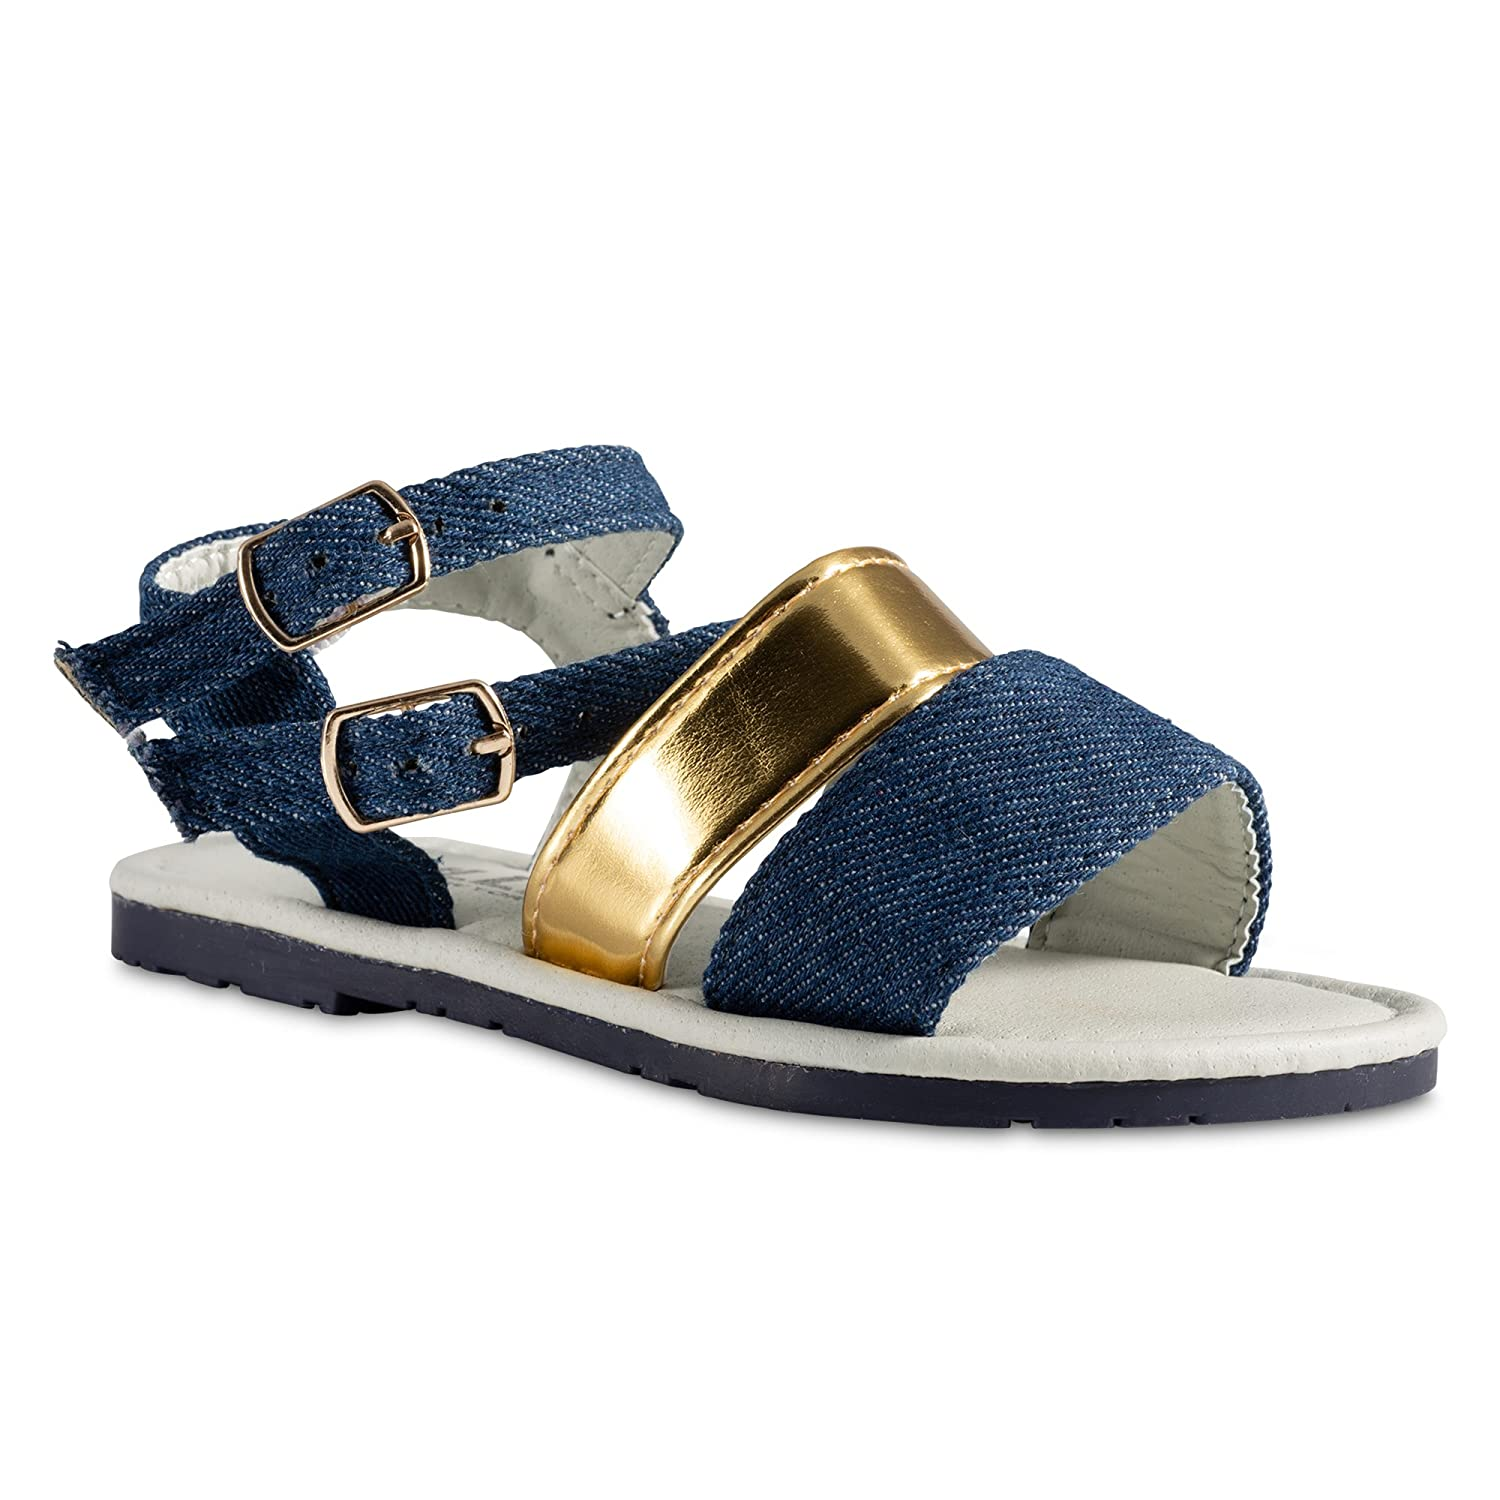 5b25c52019c Fabulous Fashion for Little Feet With Chillipop Sandals  Take your baby  girl s fashion game to a new level with these stylish Chillipop sandals.